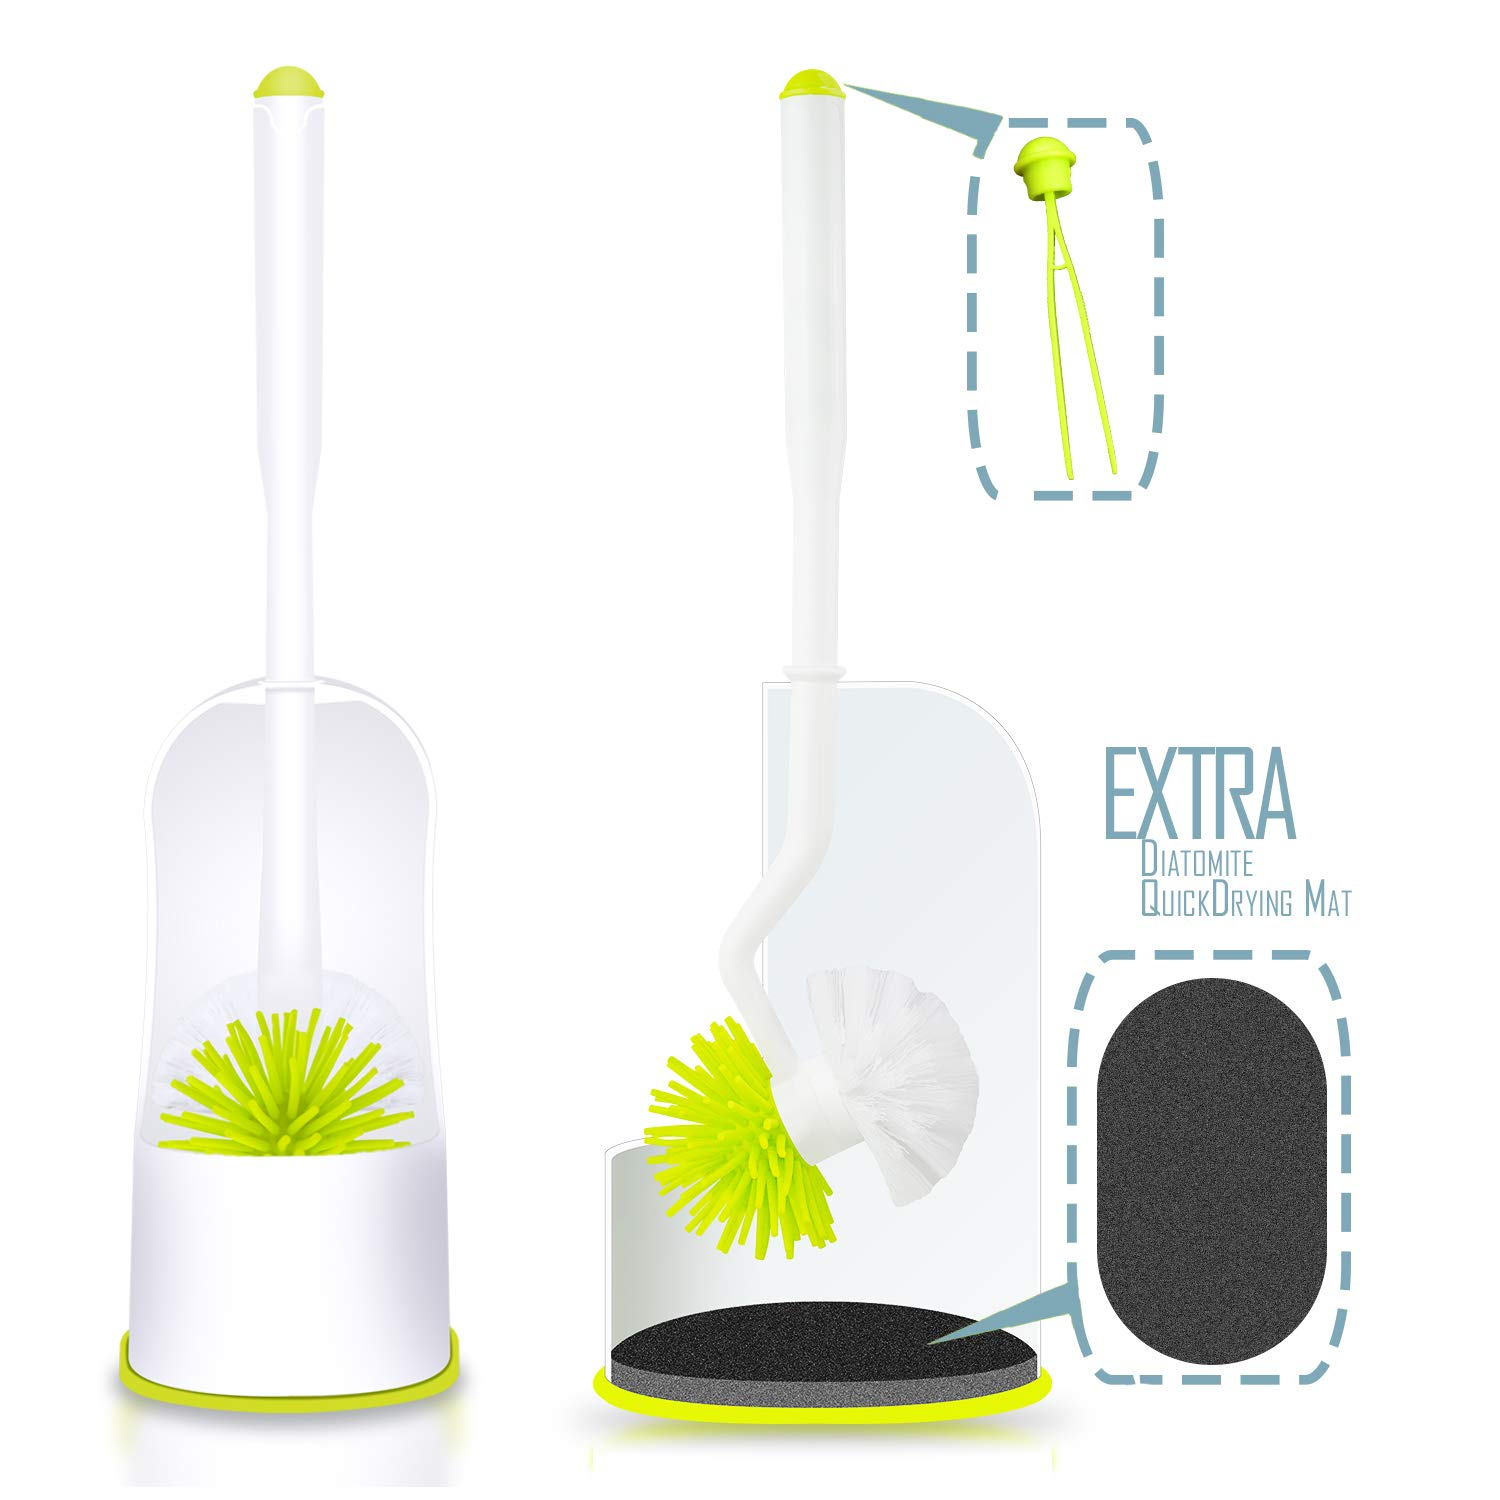 Kimitech Toilet Brush and Holder, 2 in 1 Toilet Cleaner, Soft Silicone Brush and Strong Bristles with Bowl Holder, Come with Water-Dry Diatomite Mat